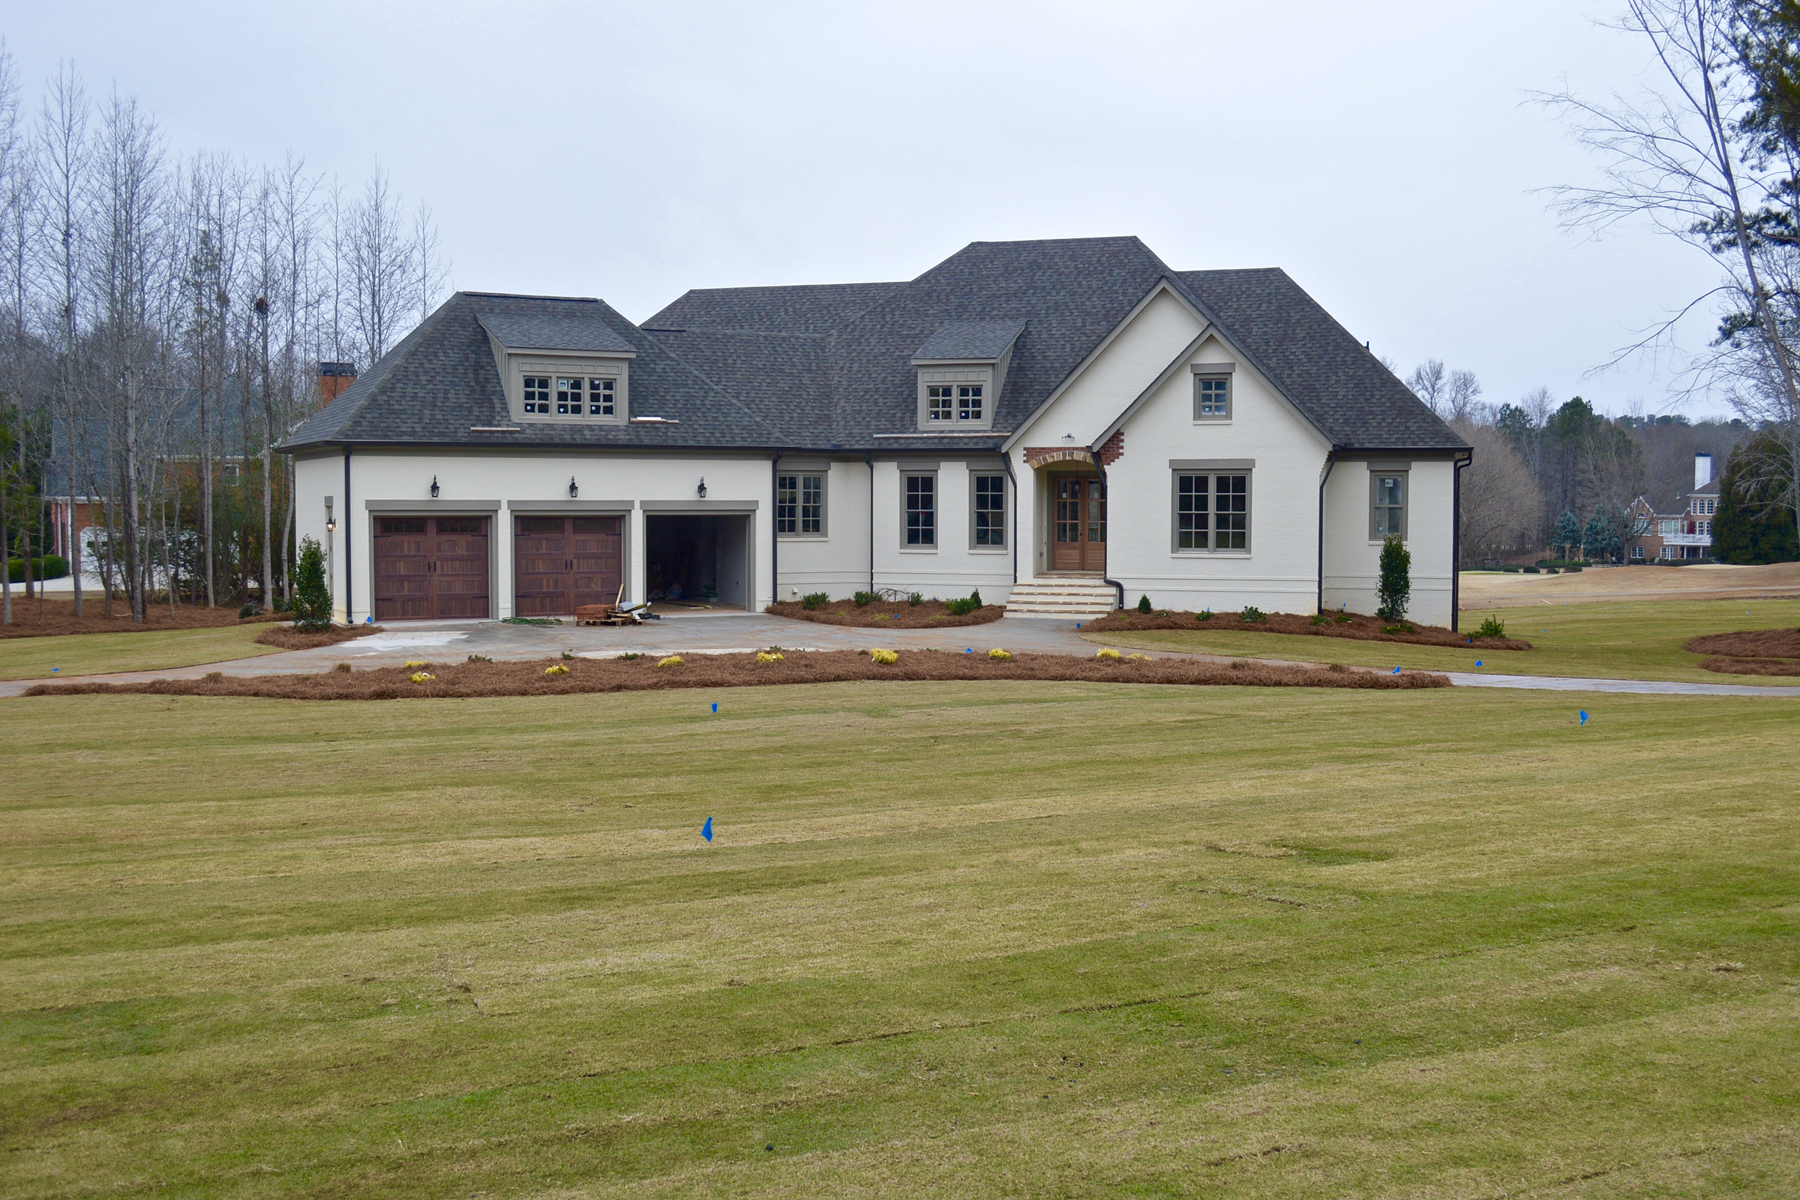 Maison unifamiliale pour l Vente à Elegant New Construction On Golf Course 105 Doral Court Fayetteville, Georgia, 30215 États-Unis